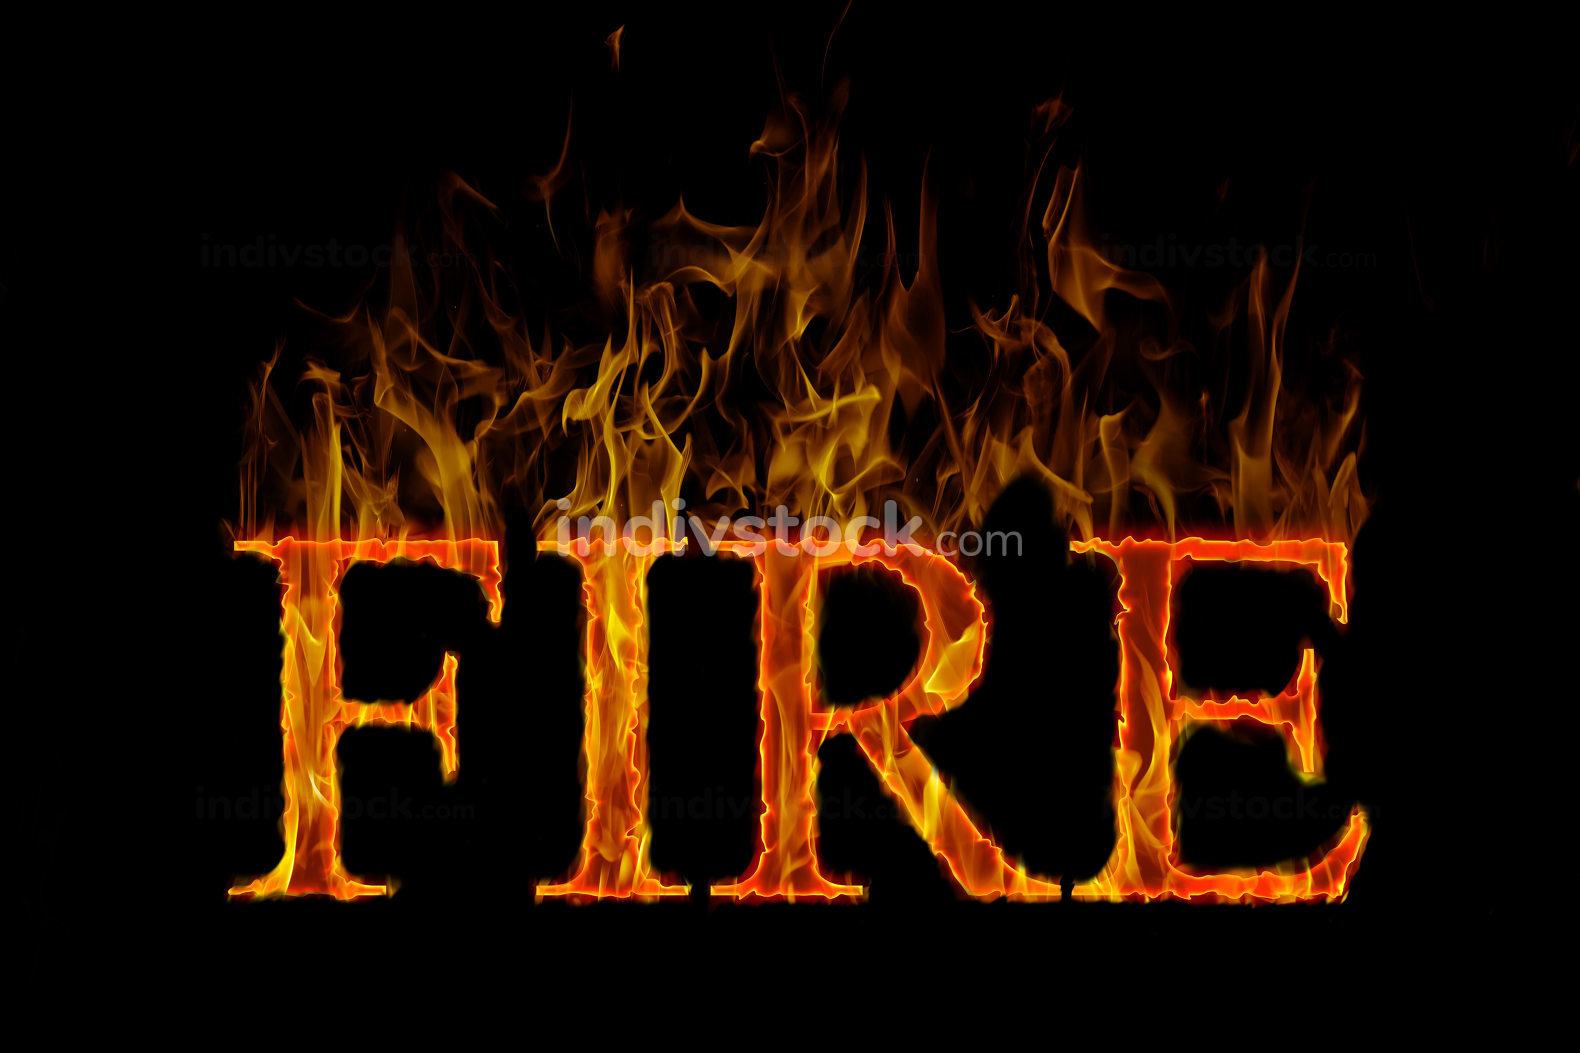 Fire lettering english burning on flame